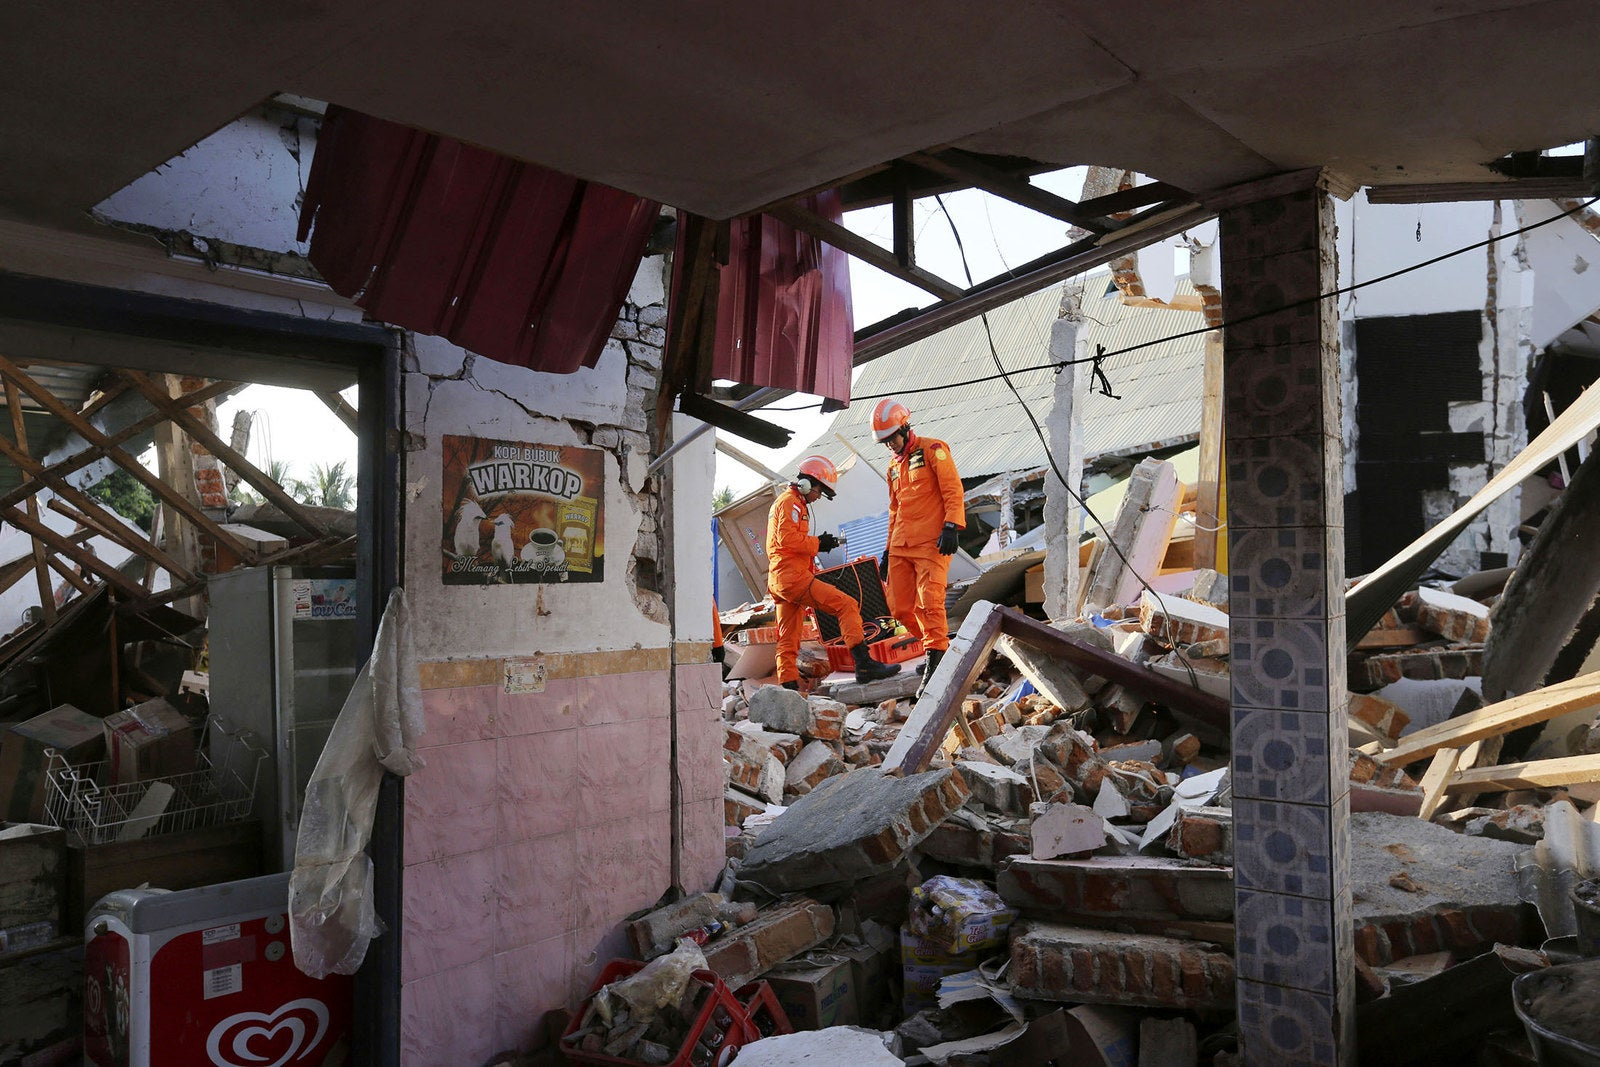 Rescue teams search for victims in the rubble.